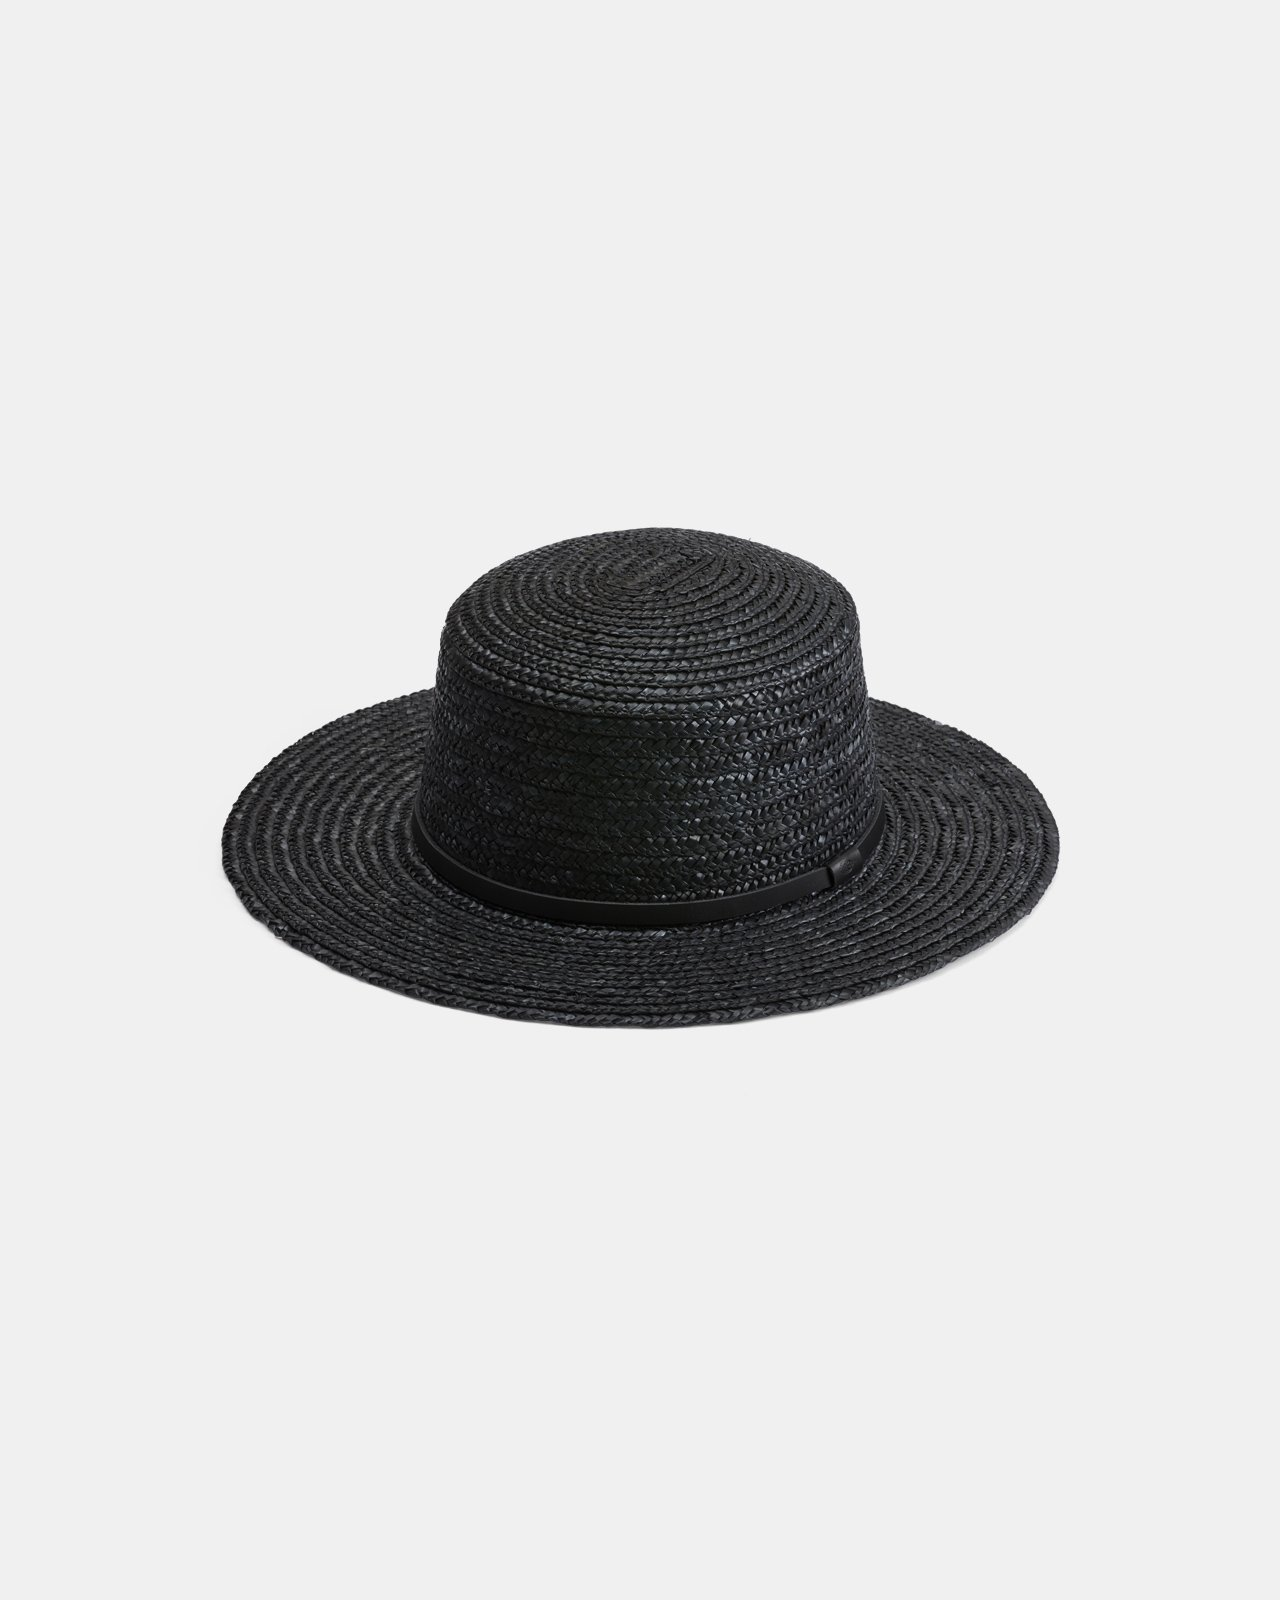 will-and-bear-harvey-black-straw-hat-1.jpg